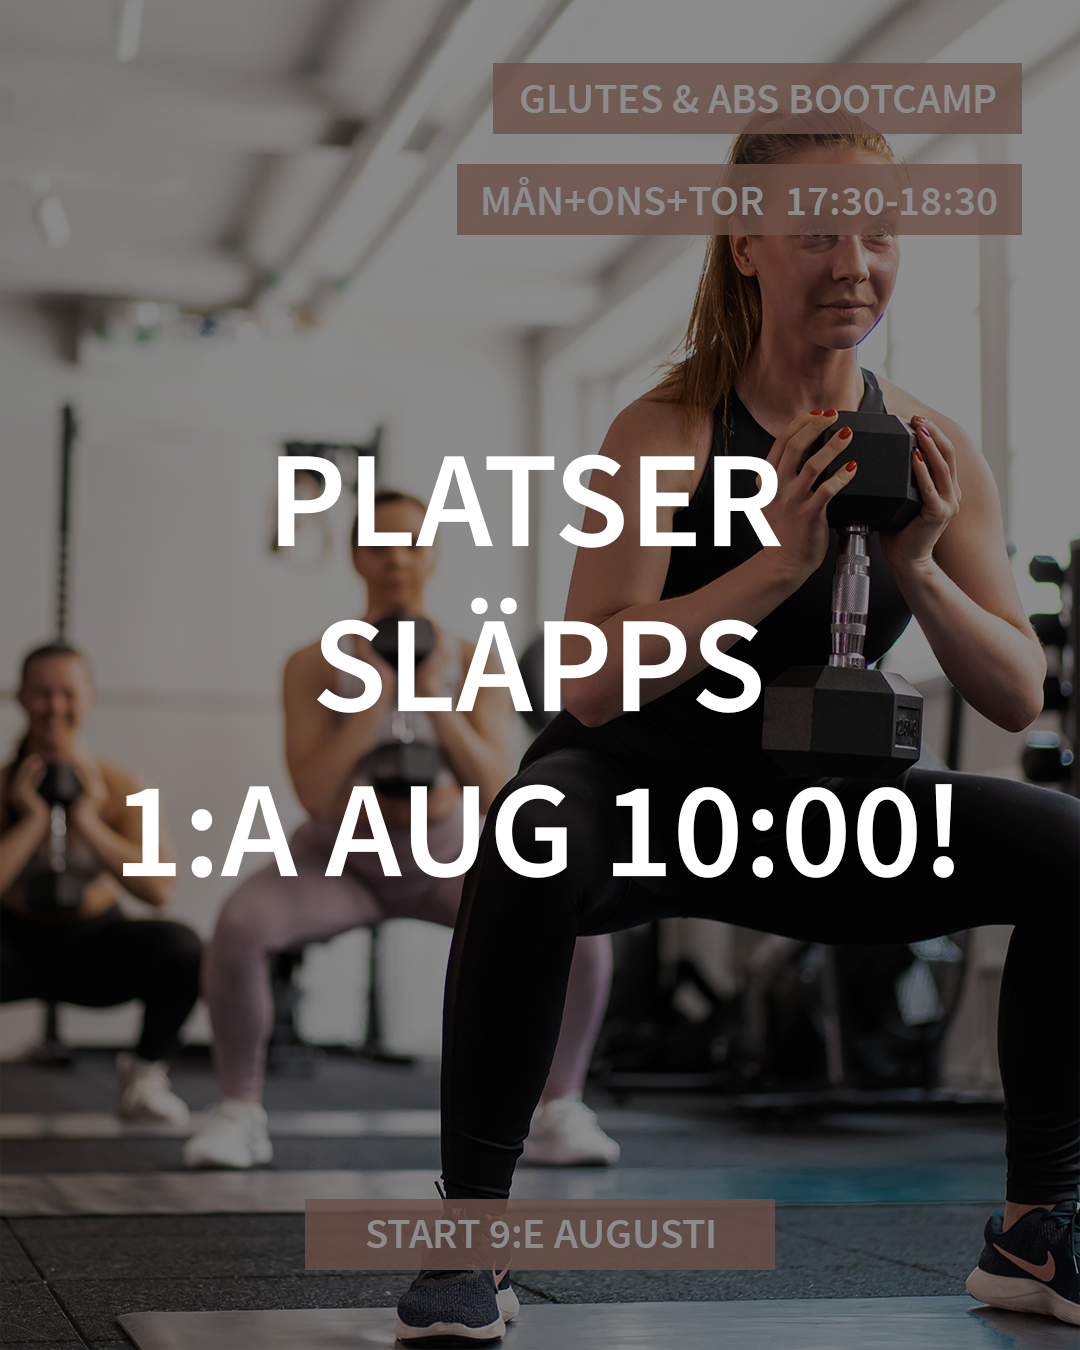 GLUTES & ABS BOOTCAMP